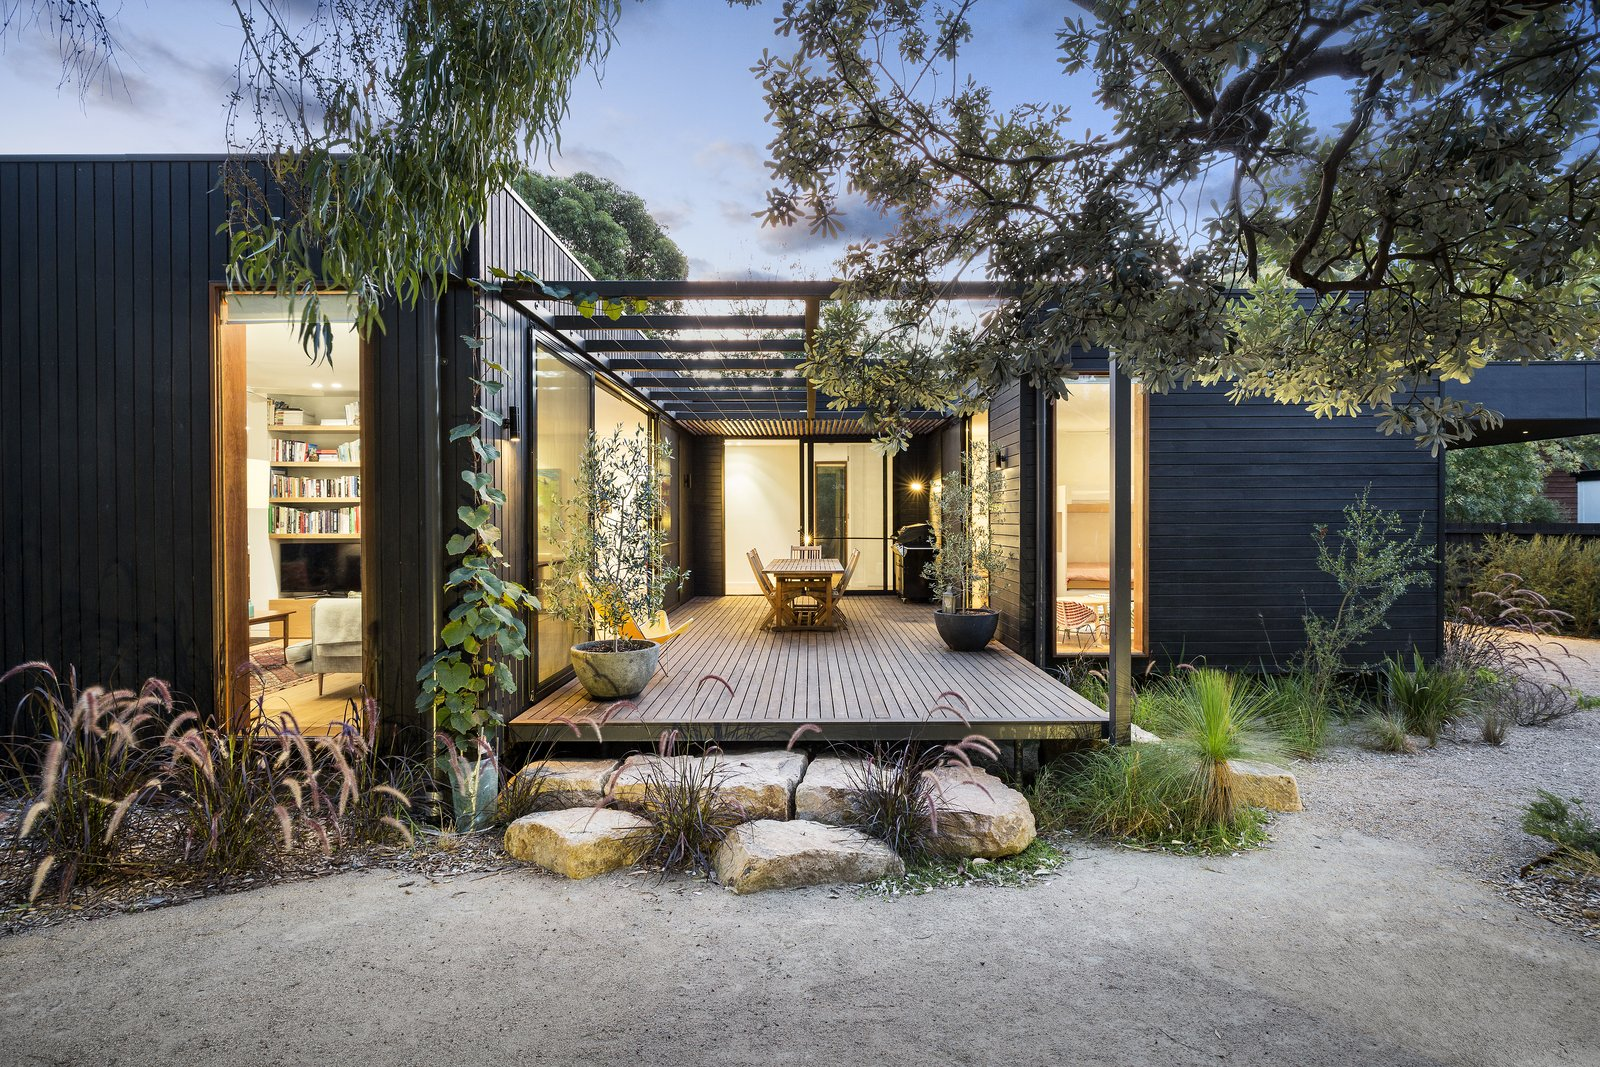 Garden, Shrubs, Side Yard, Trees, Grass, Wood, Boulders, Walkways, Large, Metal, Decking, Exterior, House, and Wood Architect: Pleysier Perkins, Location: Merricks Beach, Victoria, Australia  Exterior Grass Wood Photos from The Merricks Beach House